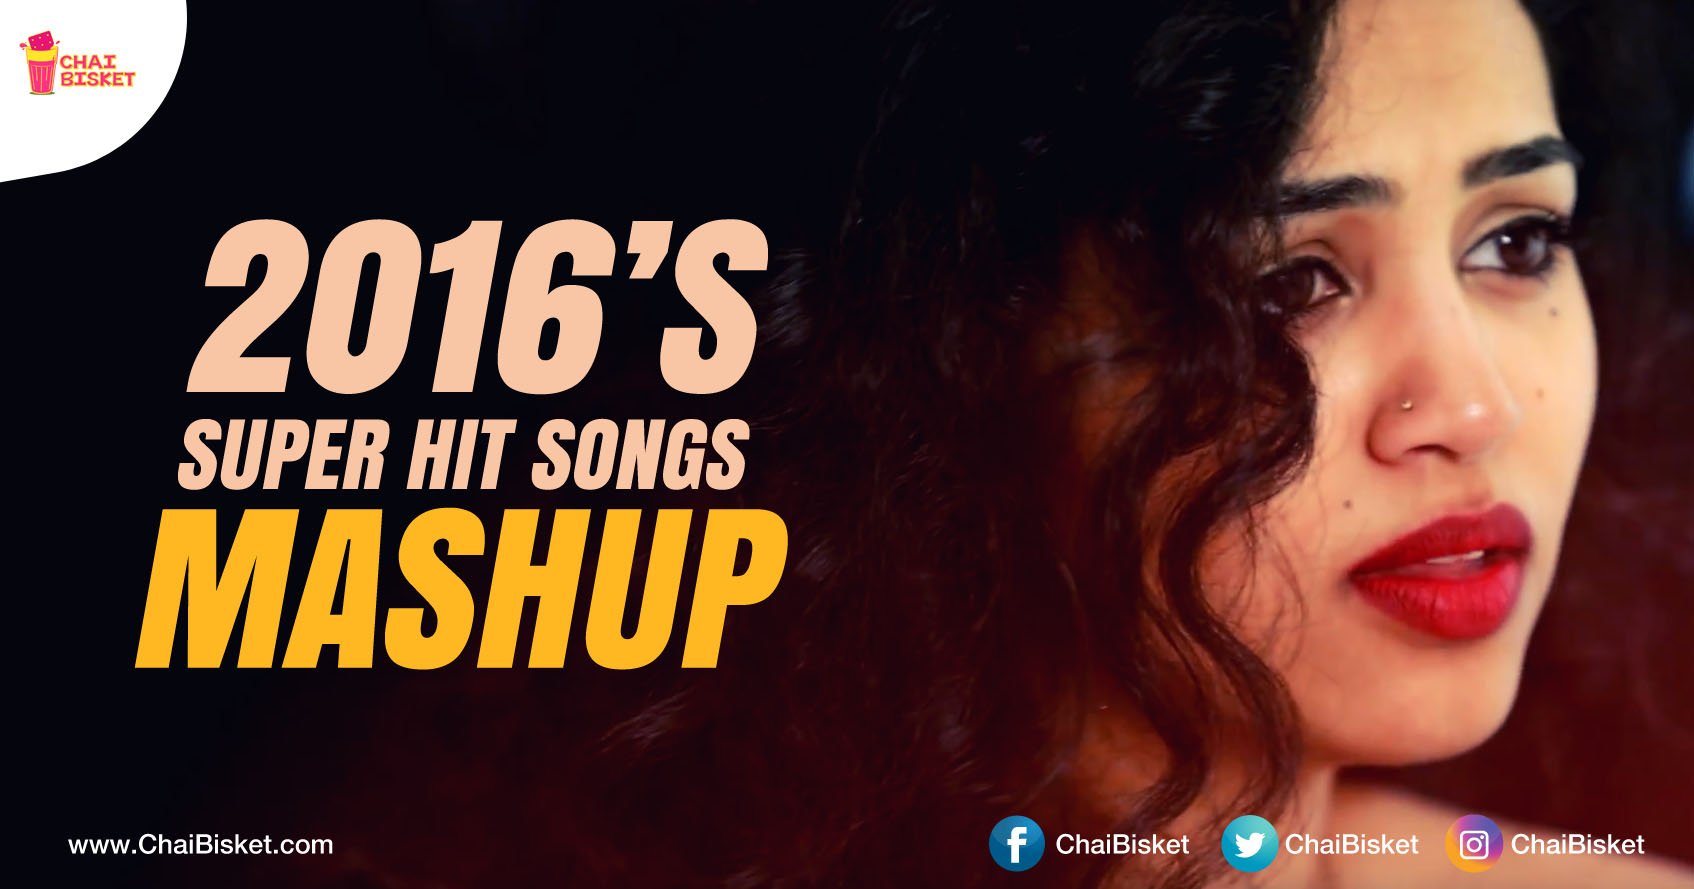 this song mashup of 24 superhit songs from 2016 s tollywood films is